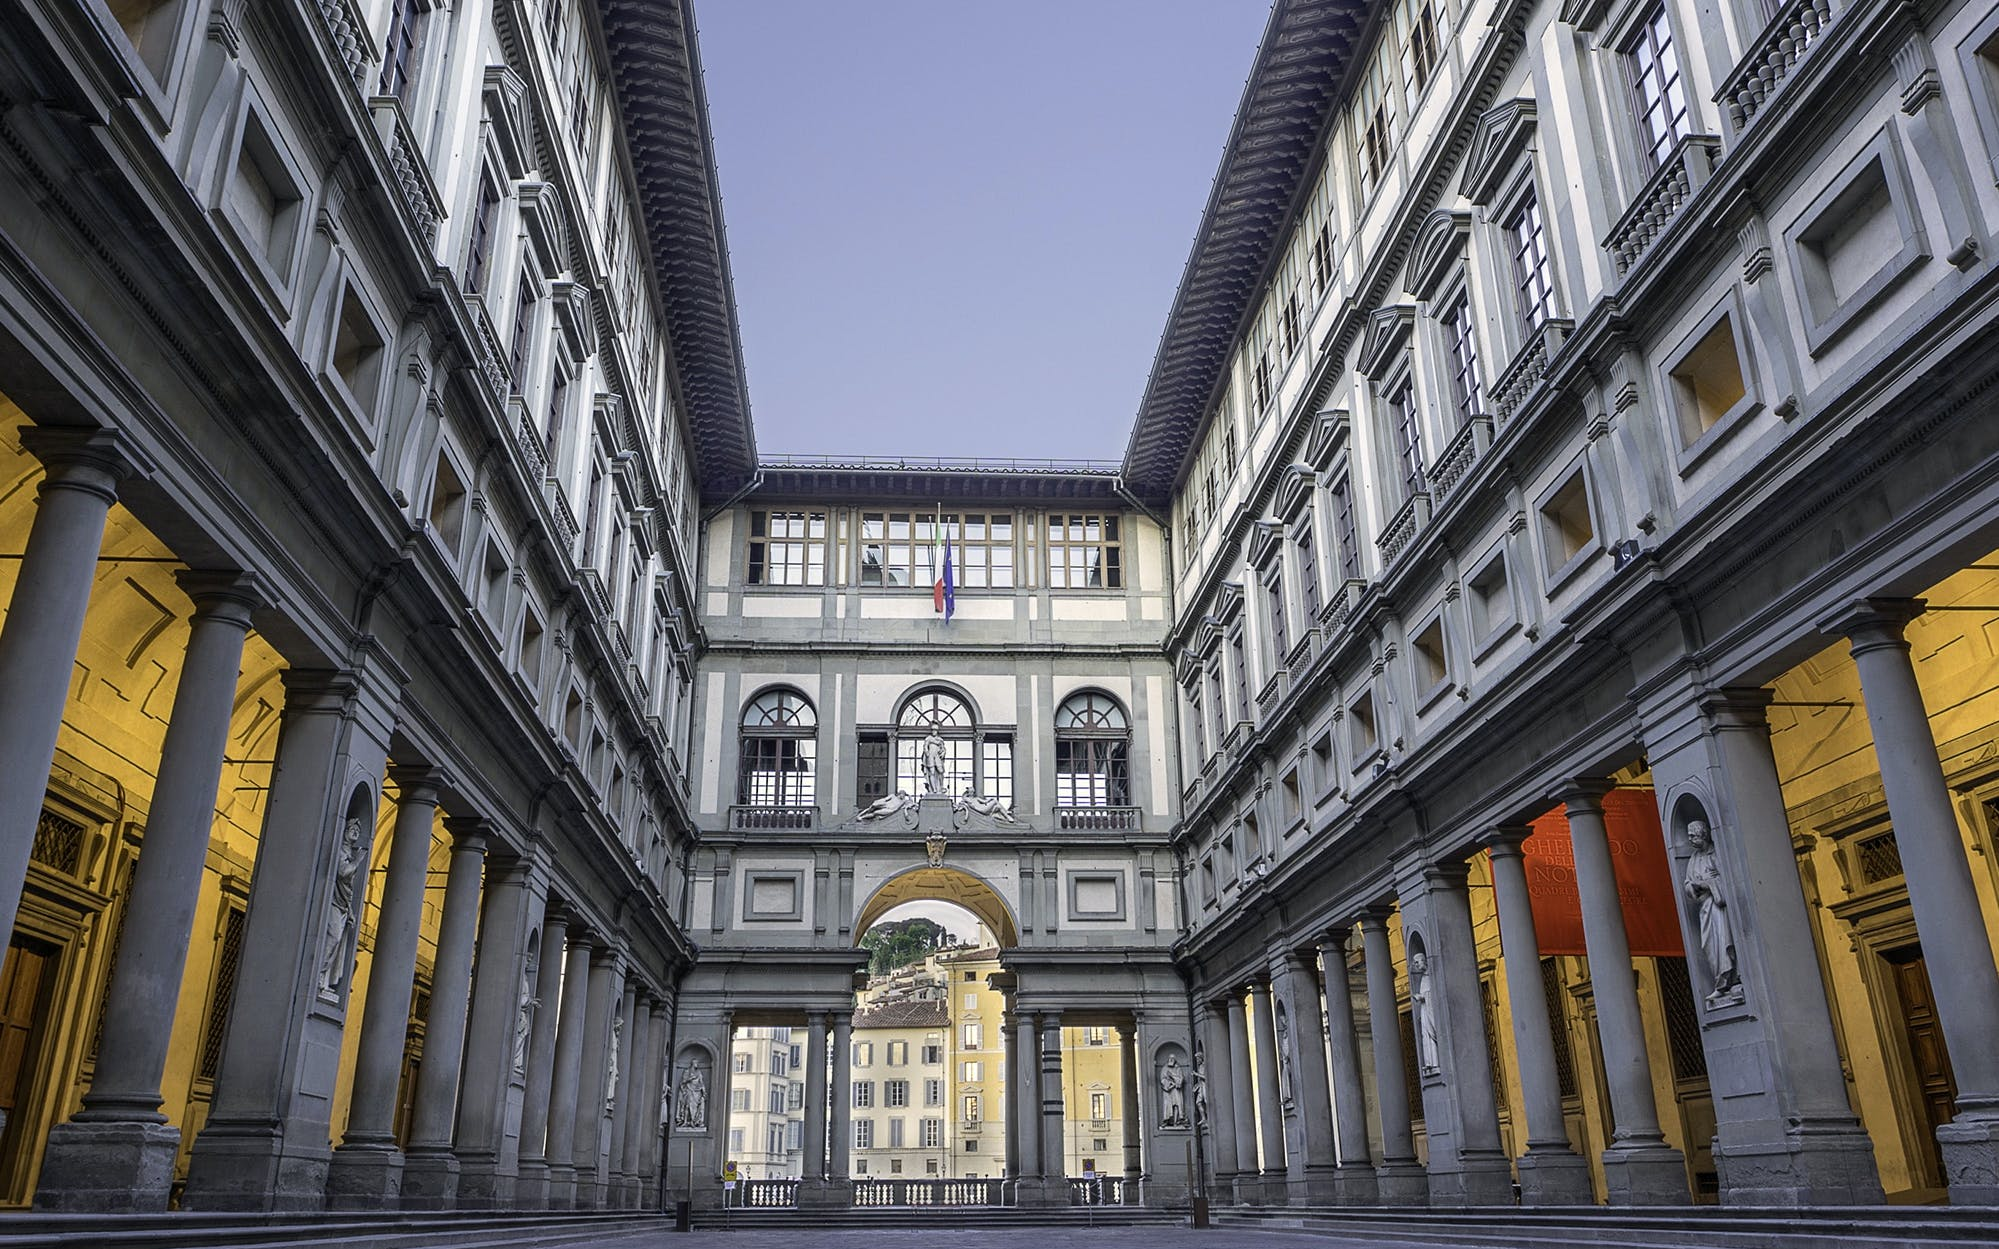 uffizi gallery guided tour with skip the line tickets-1